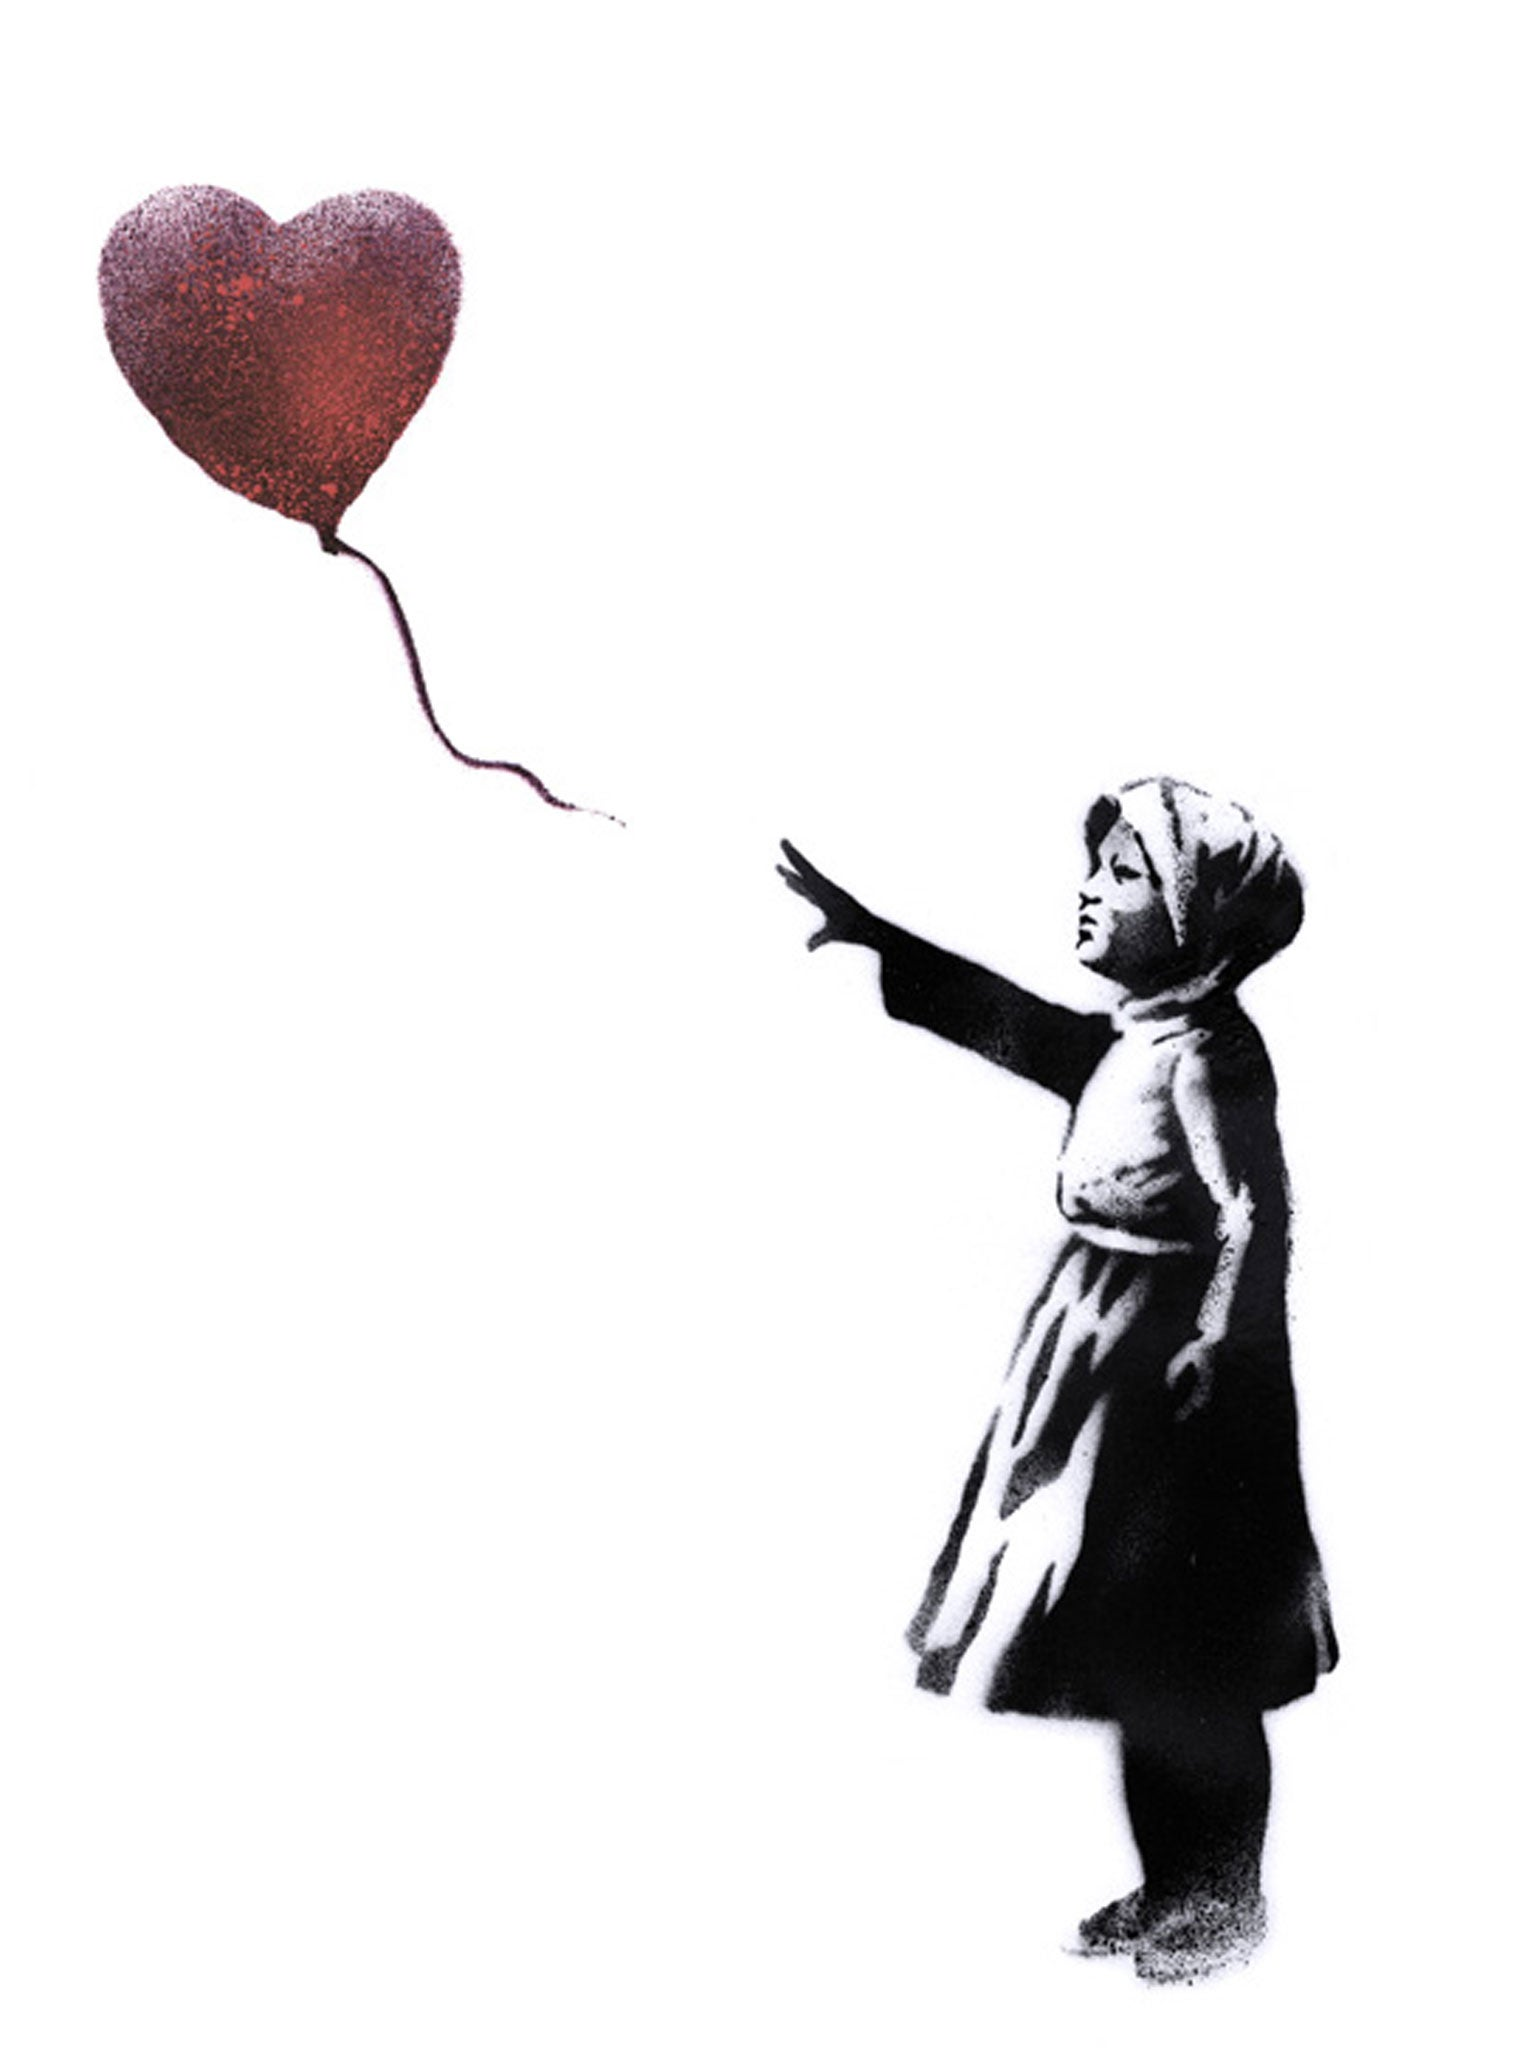 banksy reworks with heart balloon to mark third anniversary